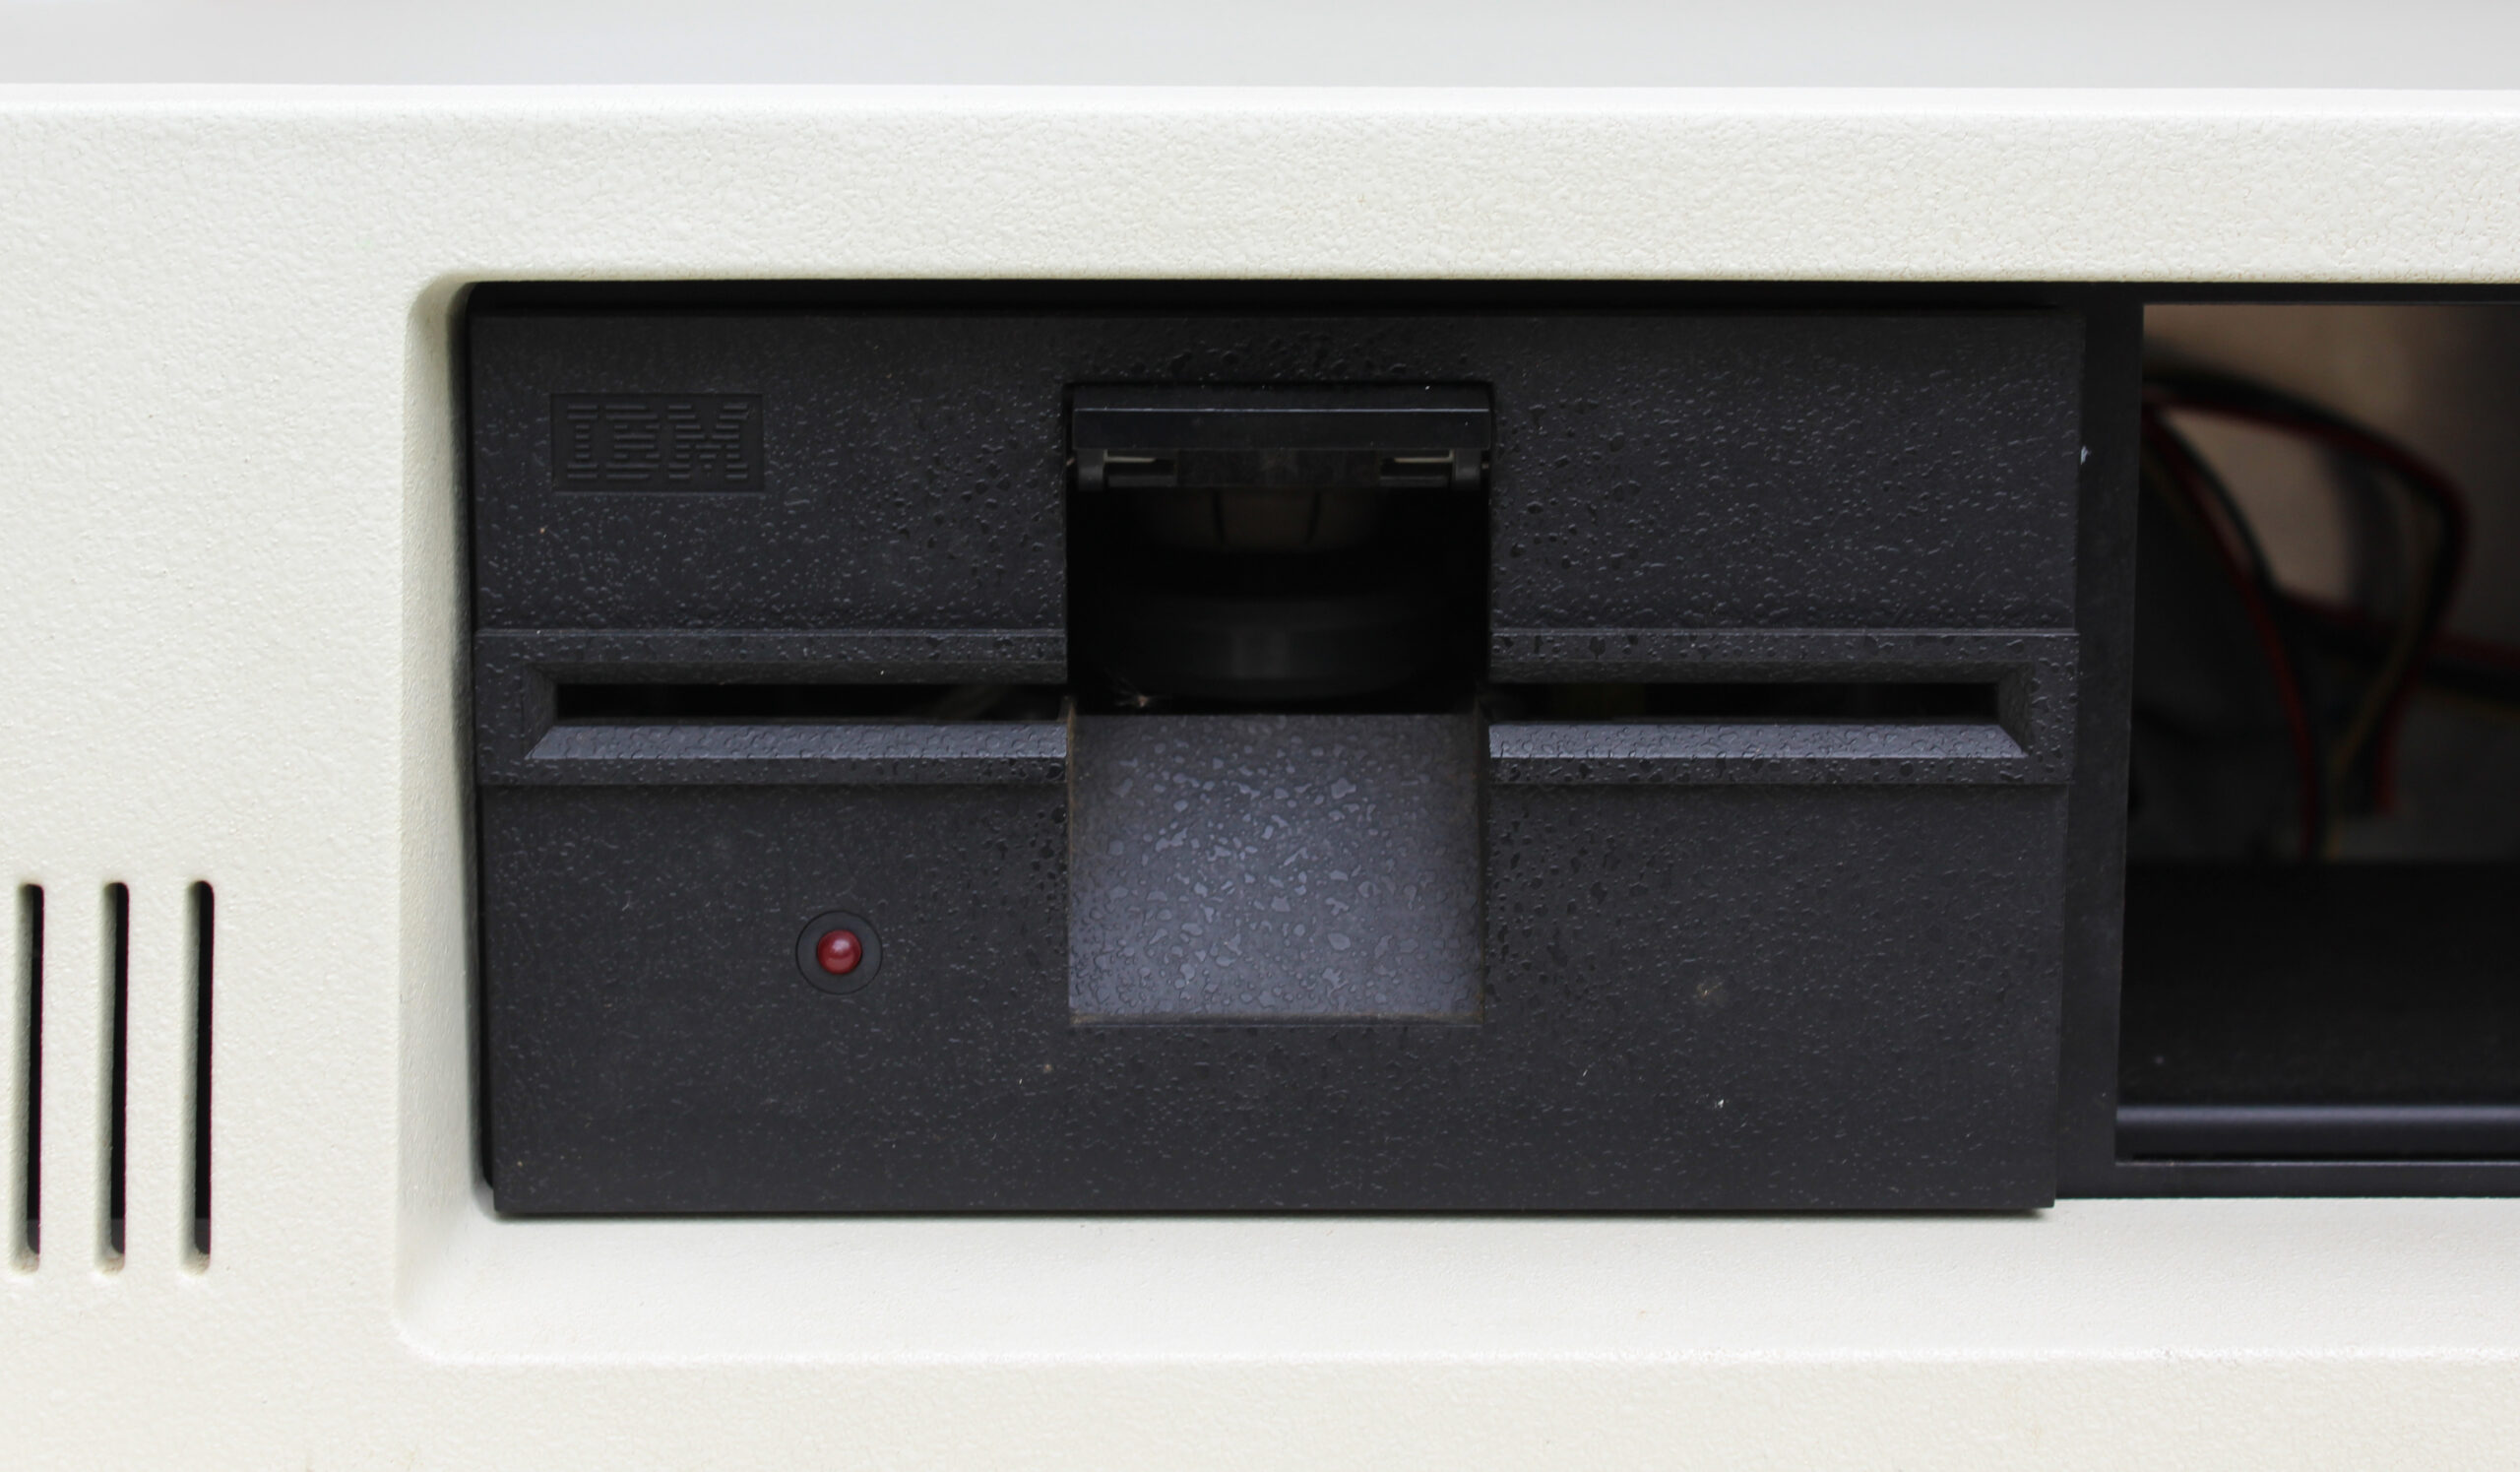 A 5.25in floppy drive was the standard storage system for the 5150, with no hard drive option at launch